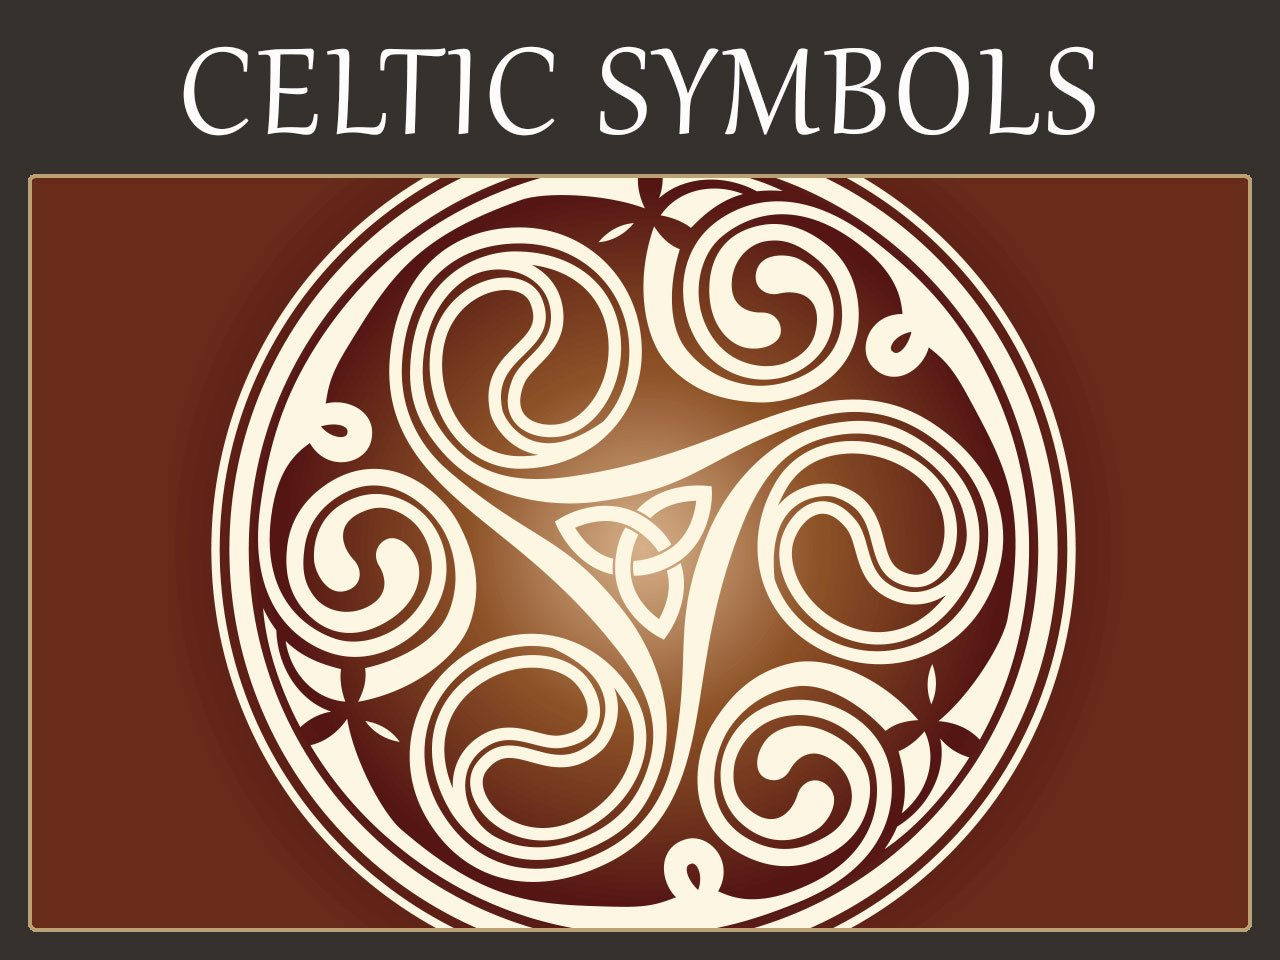 Celtic symbols meanings celtic cross triquetra celtic knot celtic symbols meanings 1280x960 buycottarizona Images